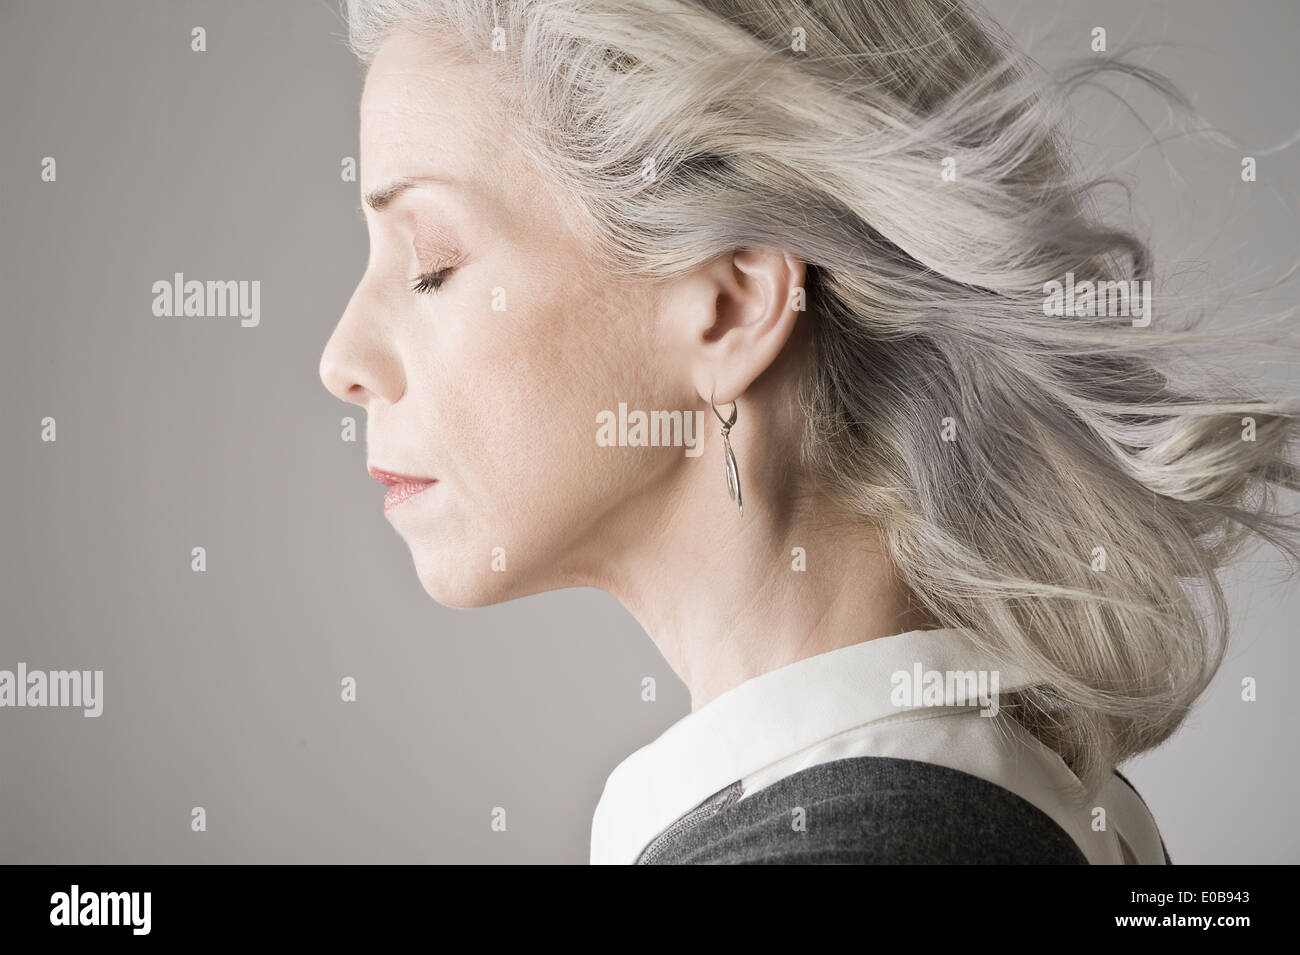 Side view of mature woman with eyes closed - Stock Image